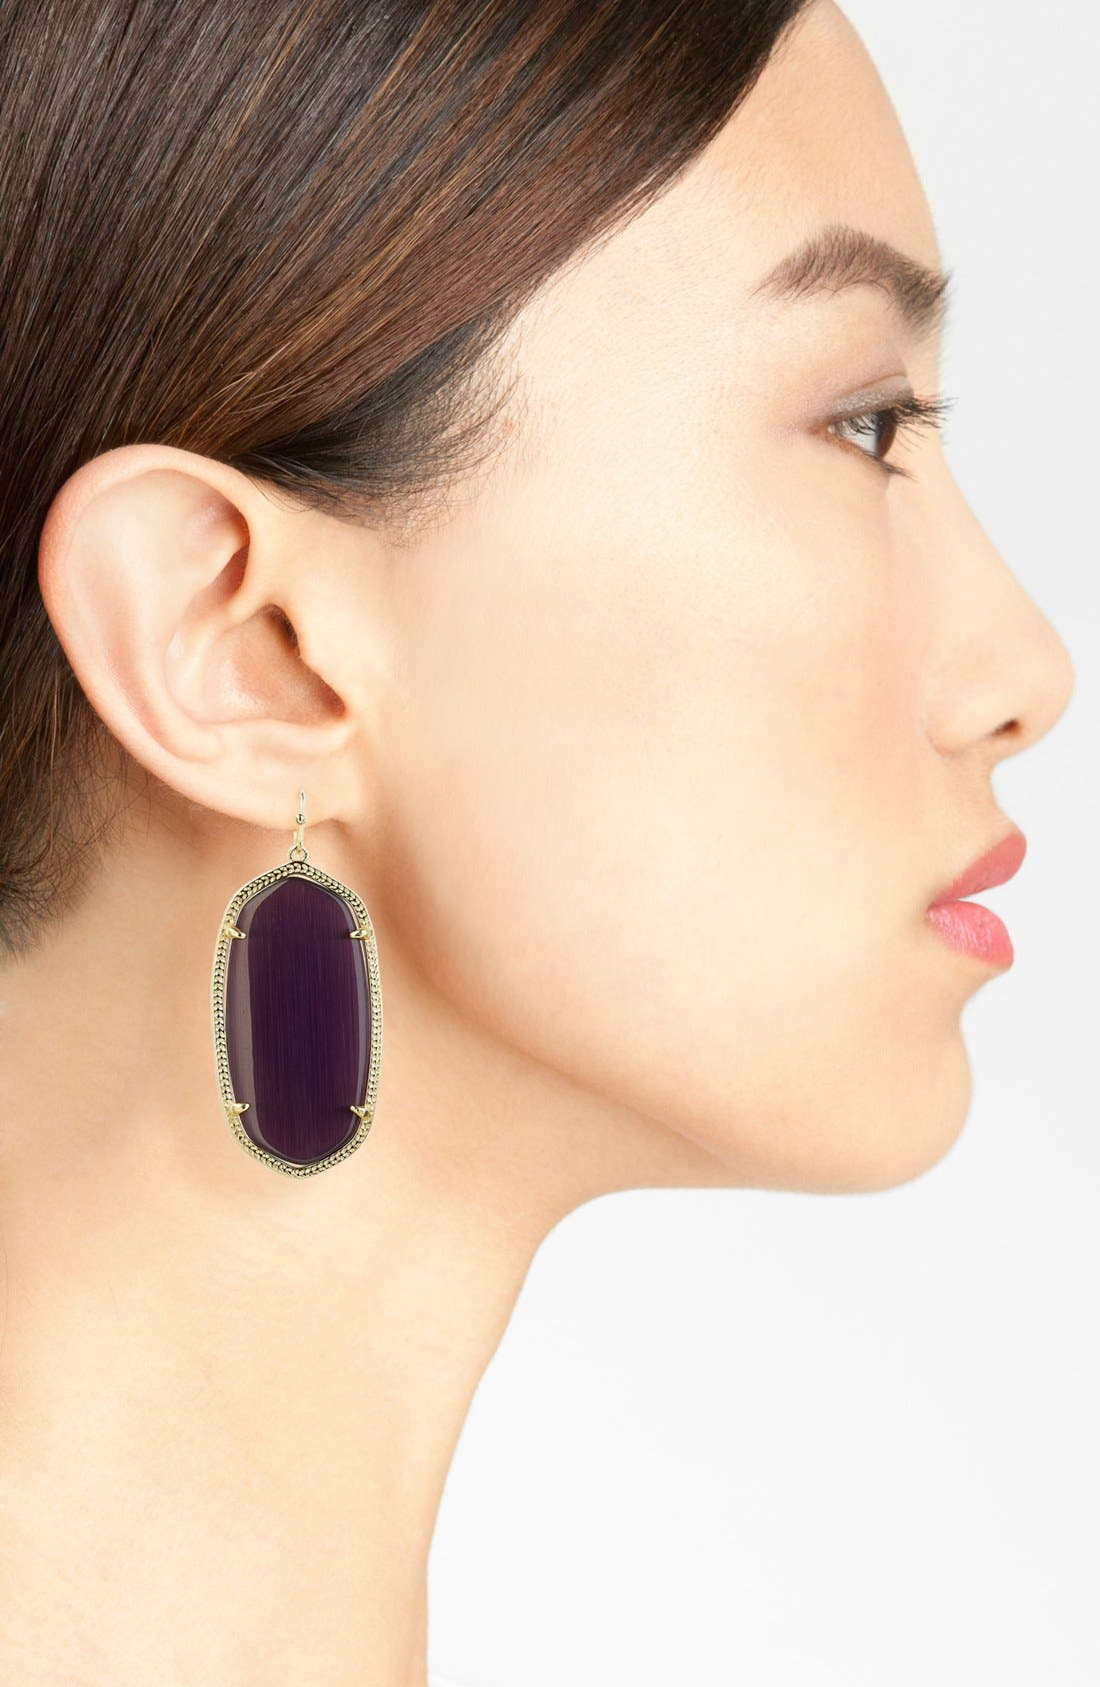 Danielle - Large Oval Statement Earrings,                             Alternate thumbnail 4, color,